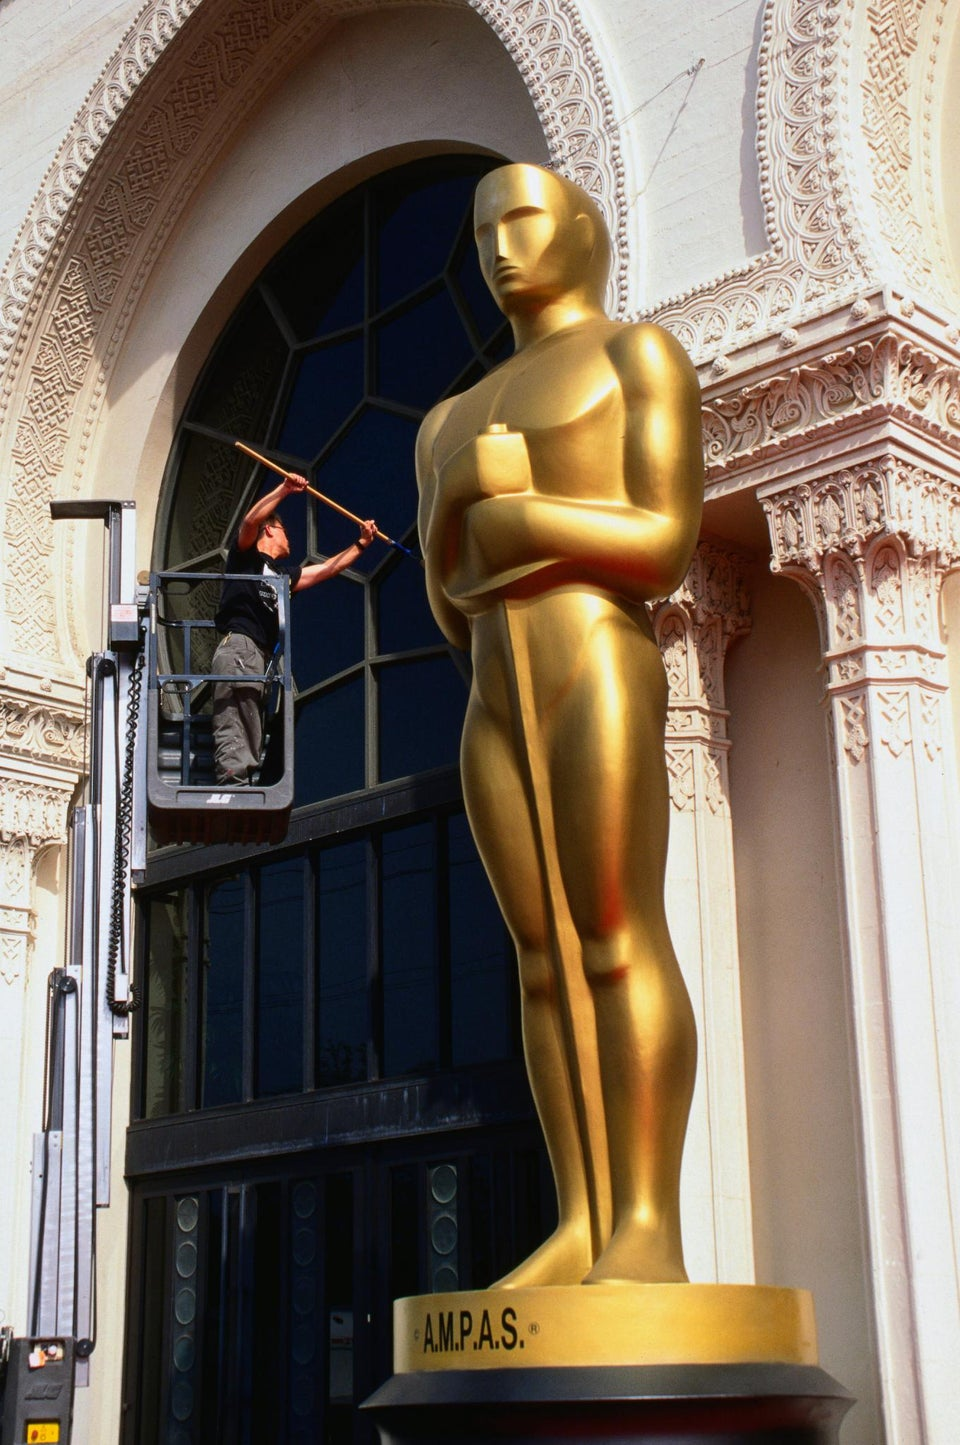 Watch Live Coverage of the Oscars Pre-Show!